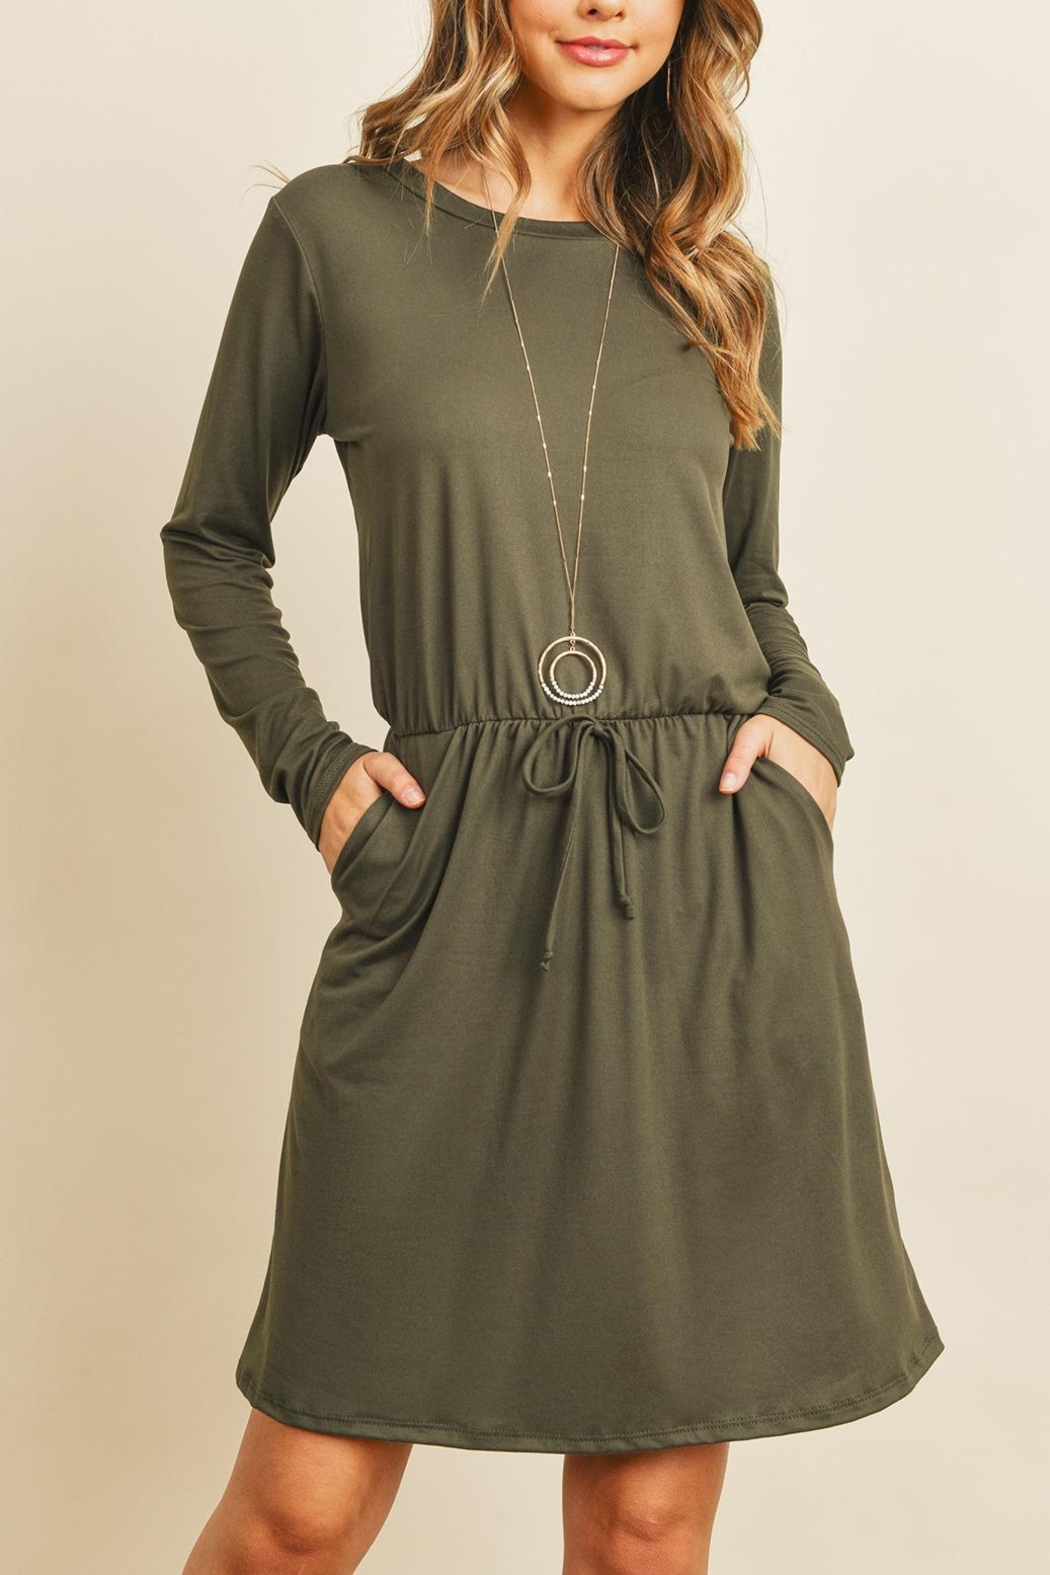 Riah Fashion Cinch-Waist-Ribbon-Detail-Long-Sleeves-Solid-Dress - Front Cropped Image